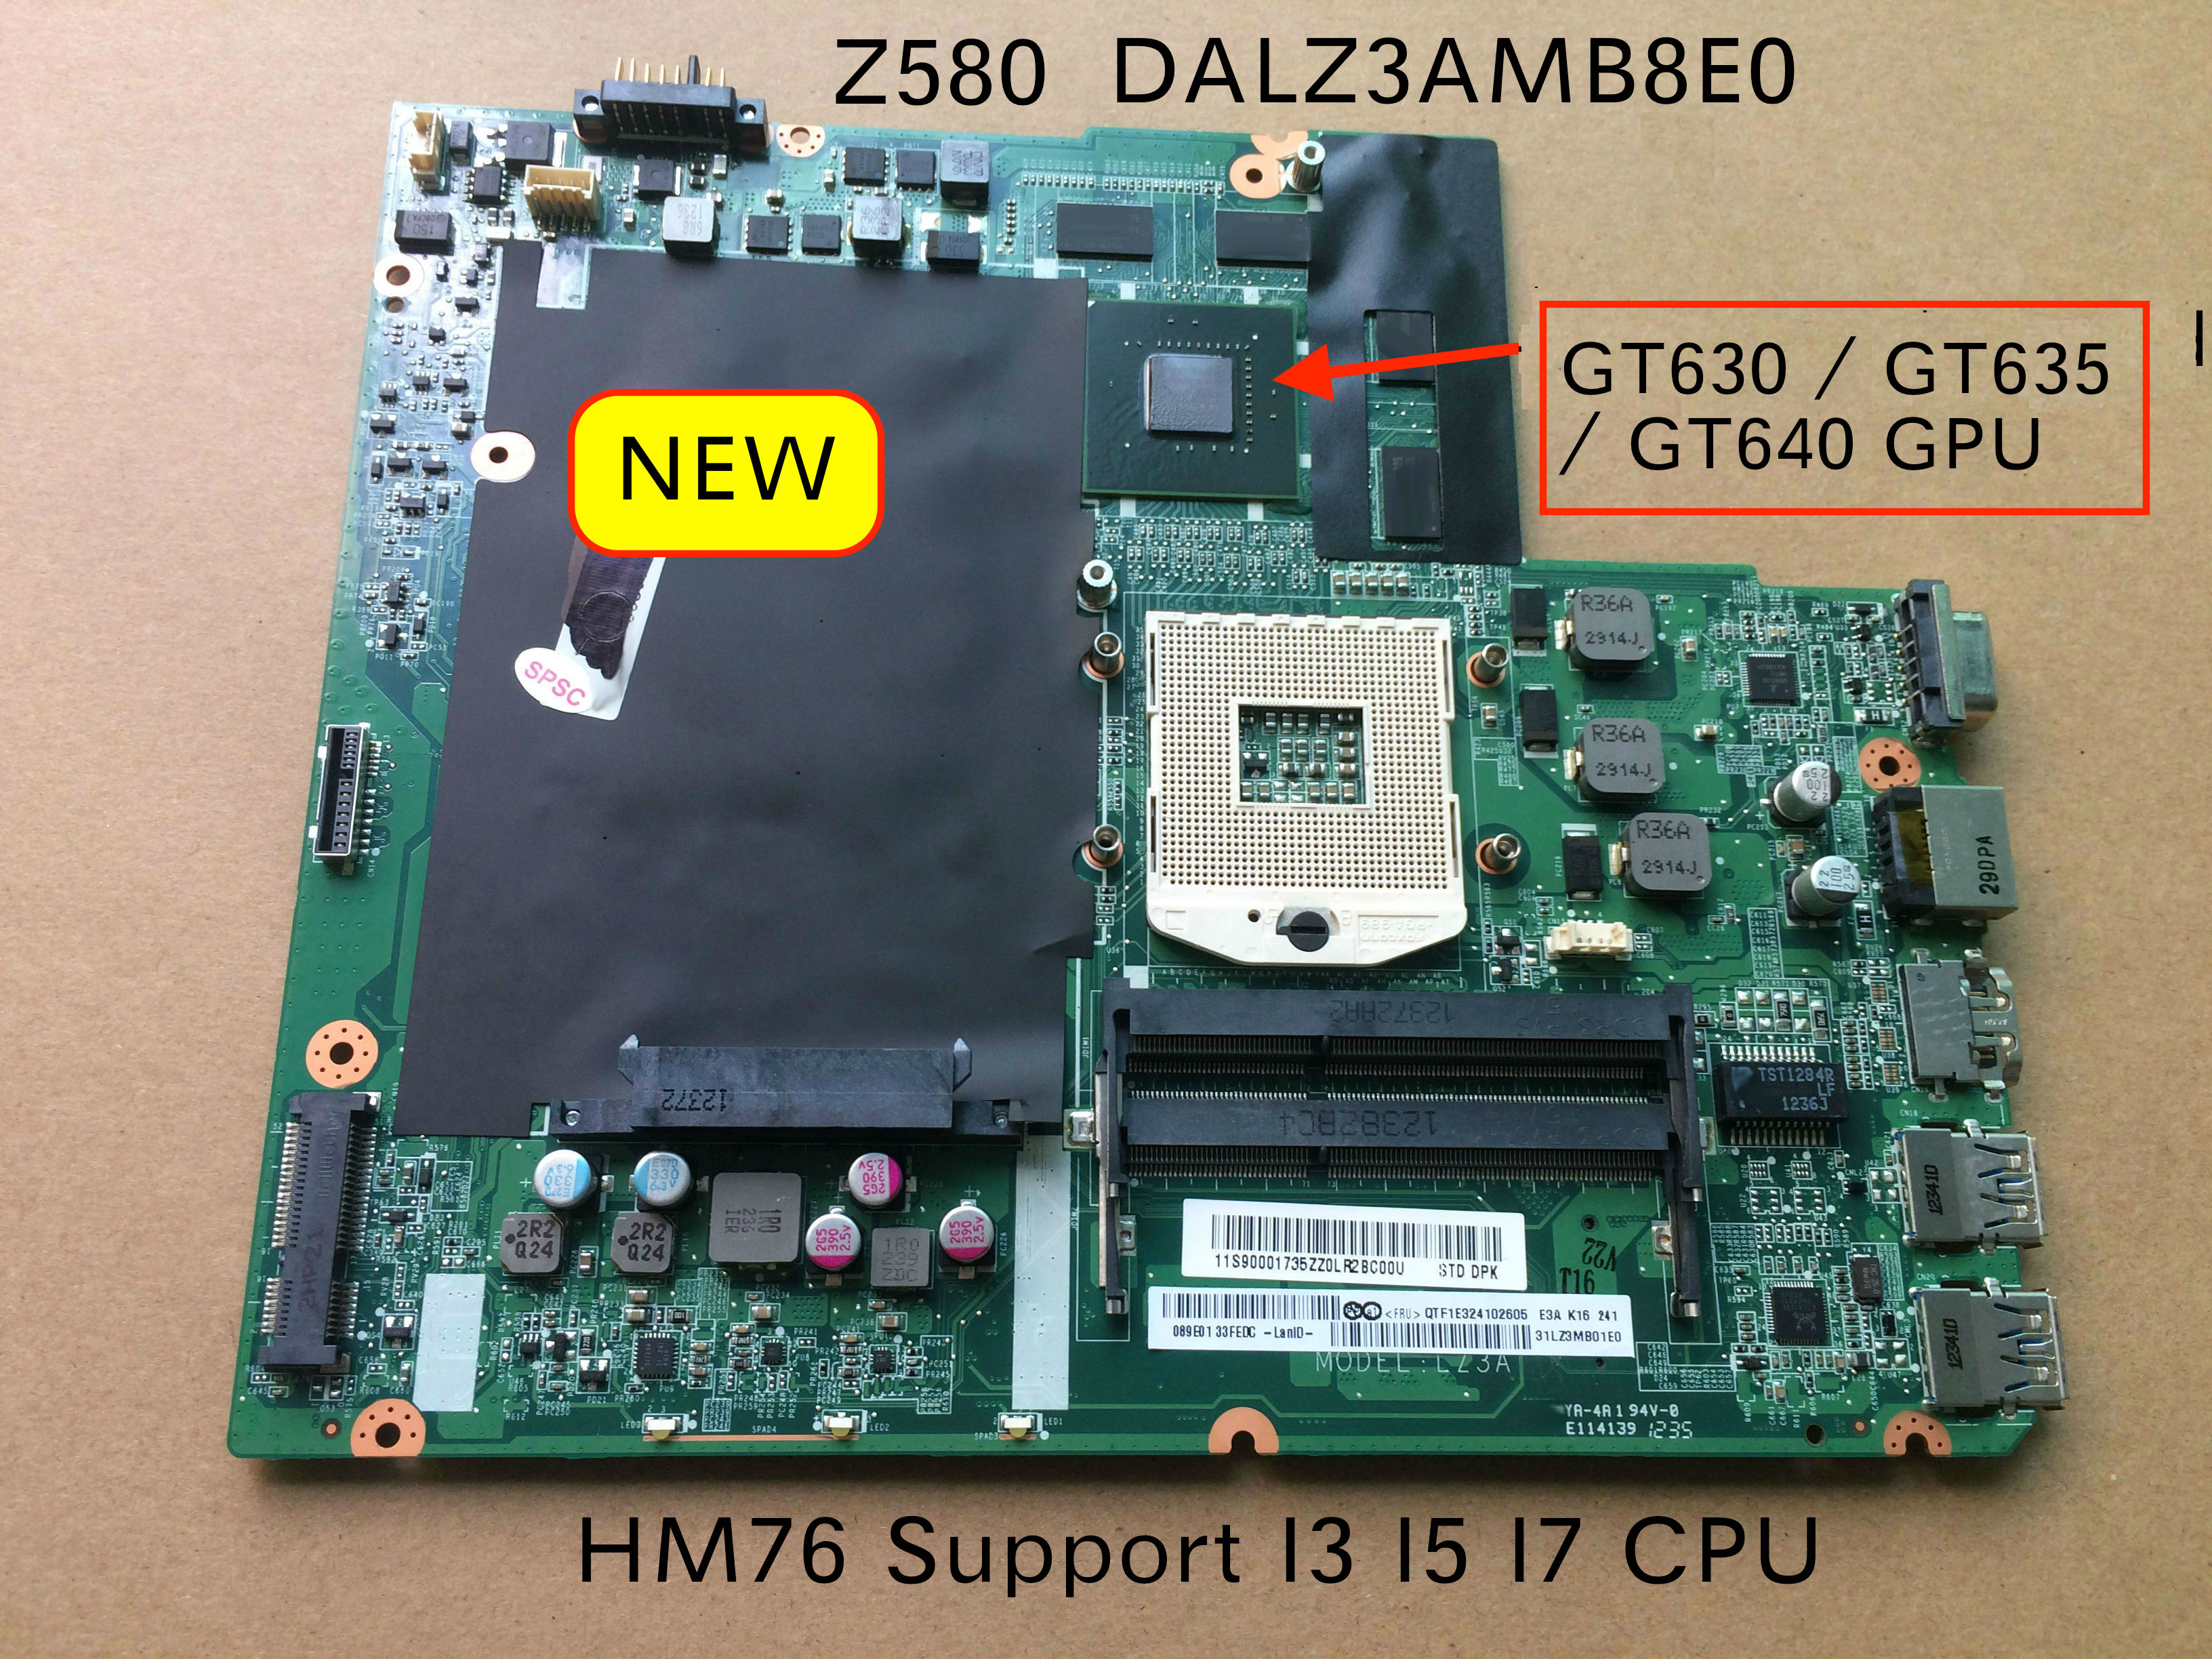 Original NEW Laptop Motherboard For Lenovo Ideapad Z580 DALZ3AMB8E0 GT630M GT635M video card